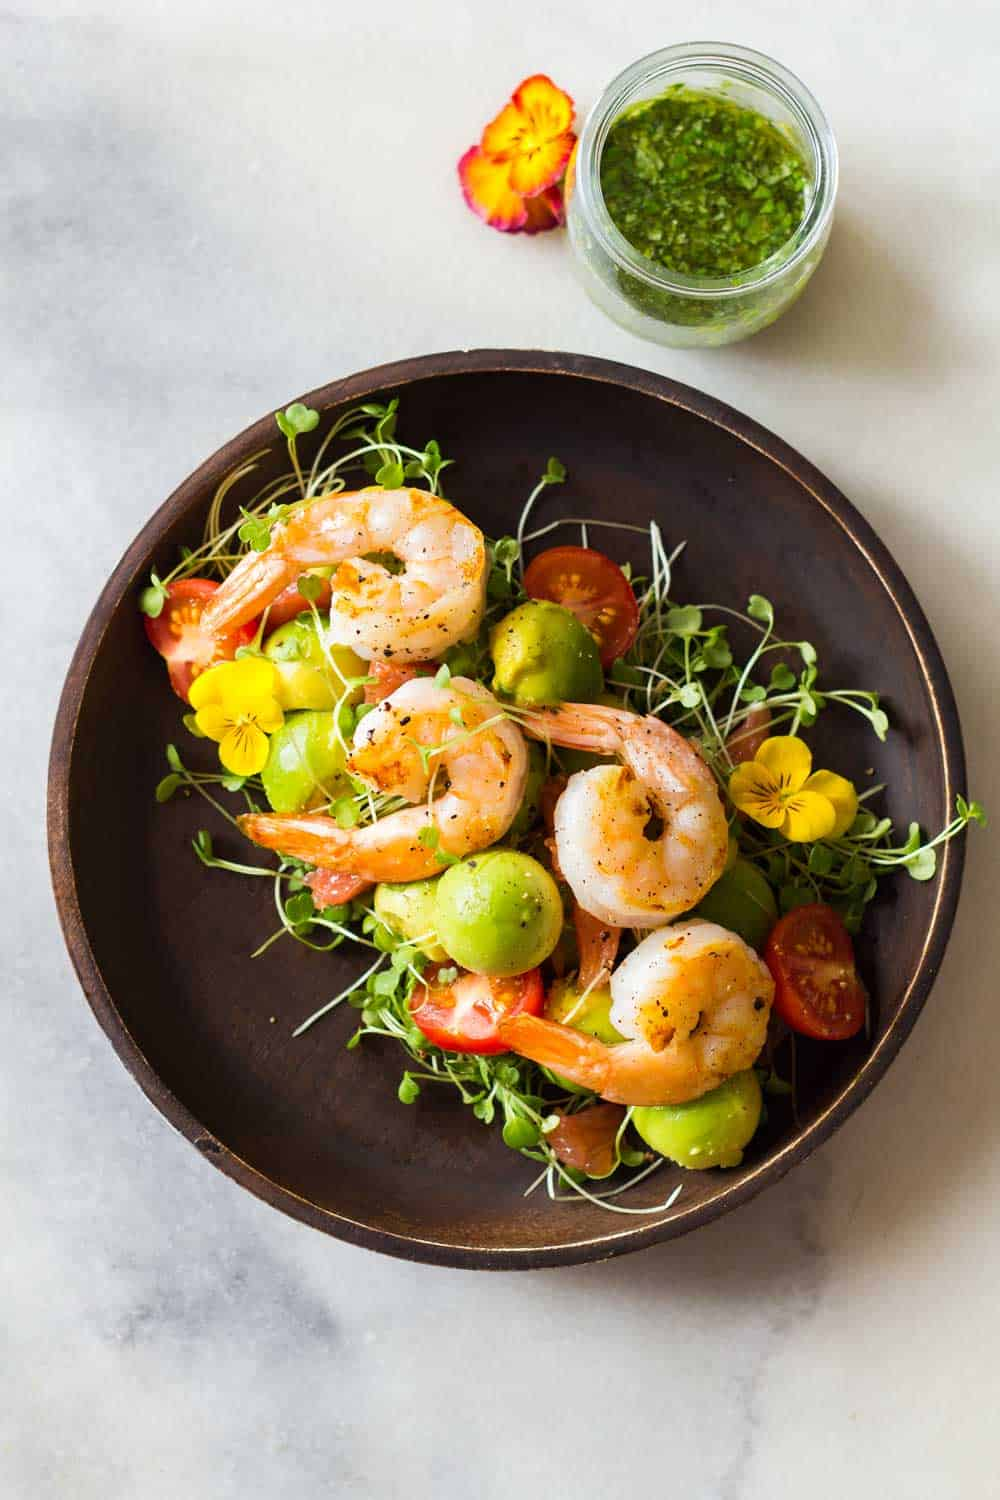 Shrimp, avocado, tomato, arugula and grapefruit on a plate with cilantro dressing in a jar.